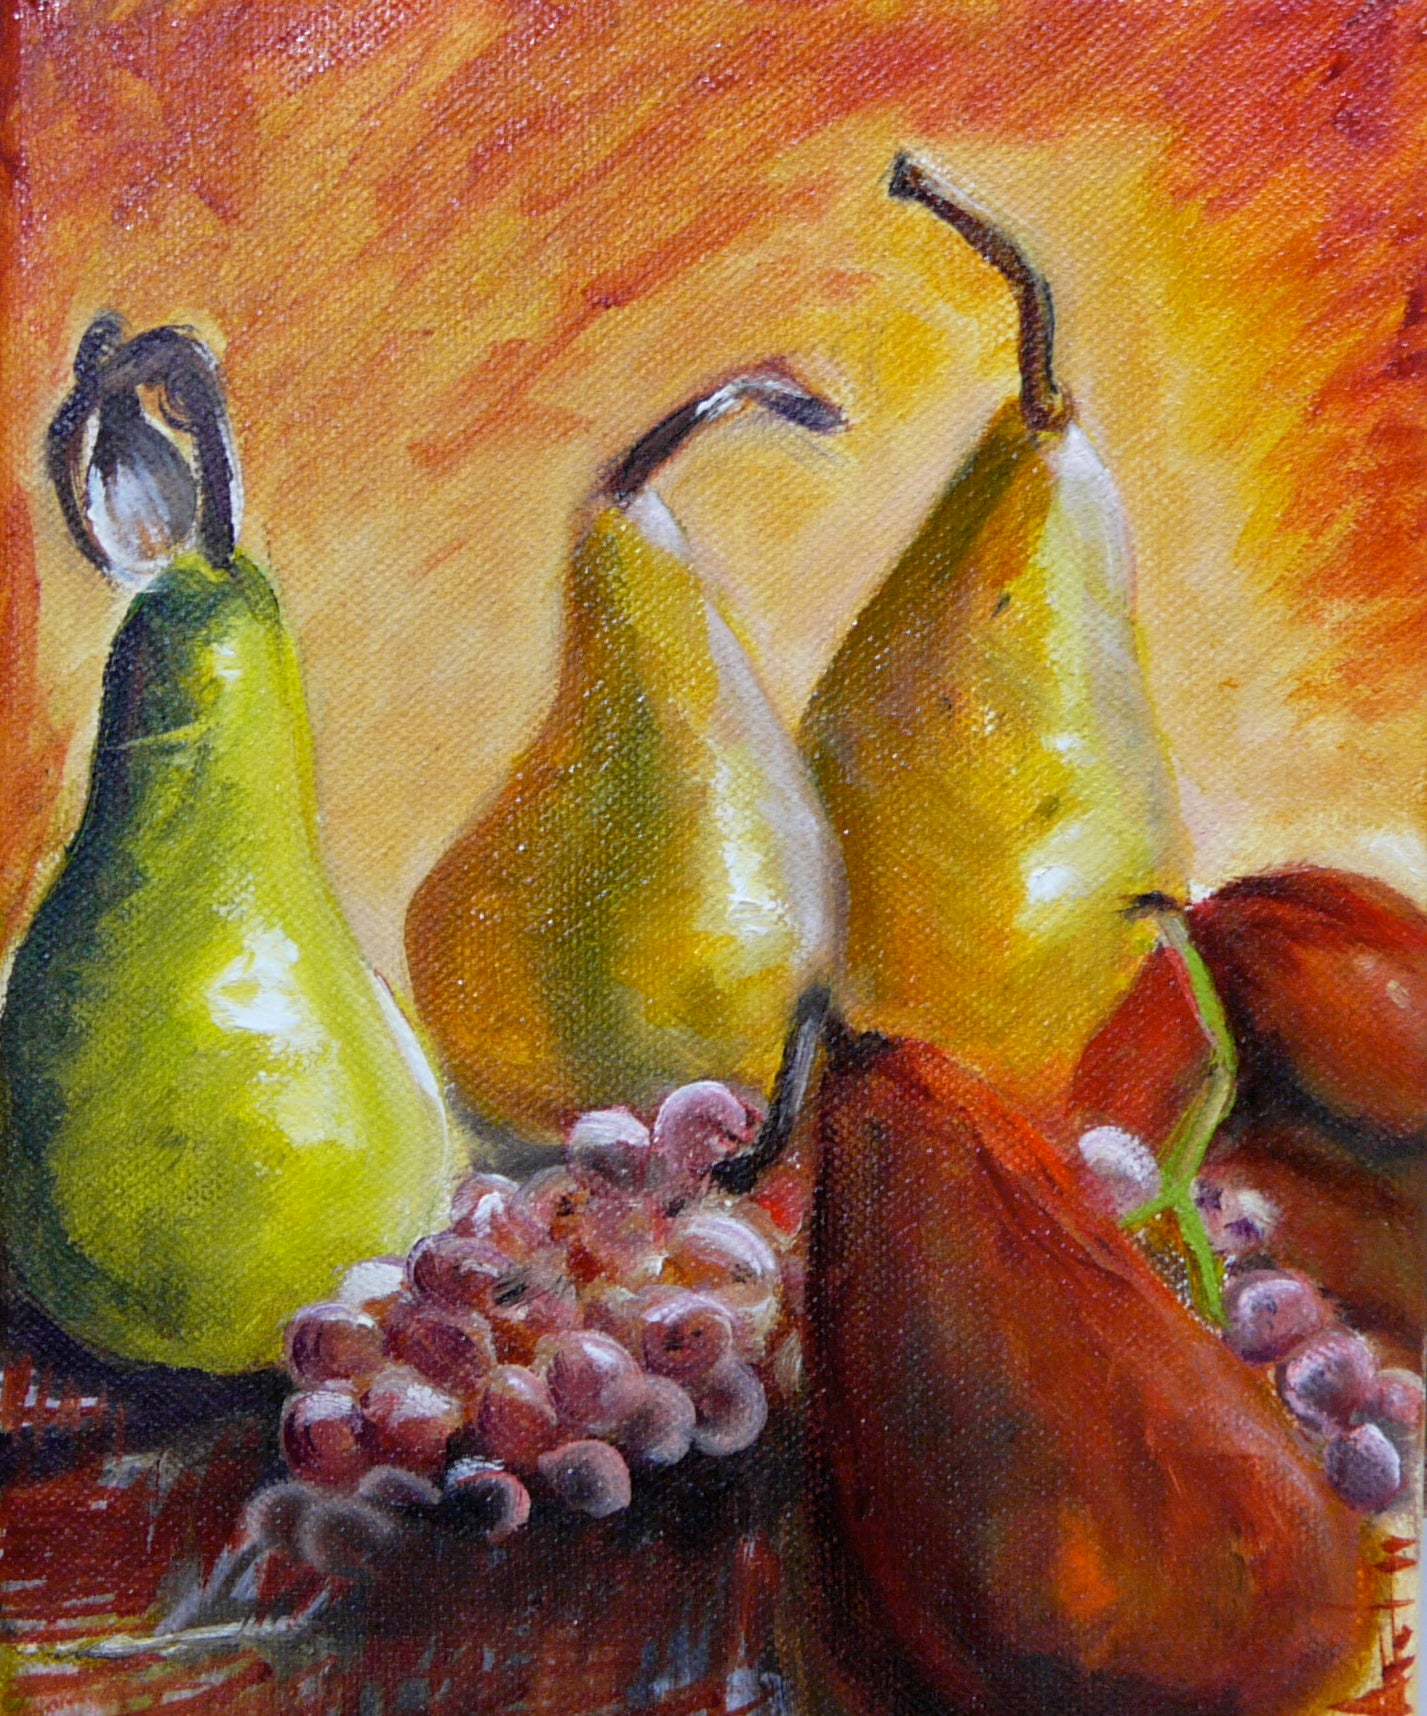 Small Pears and Grapes - Artistic Transfer, LLC